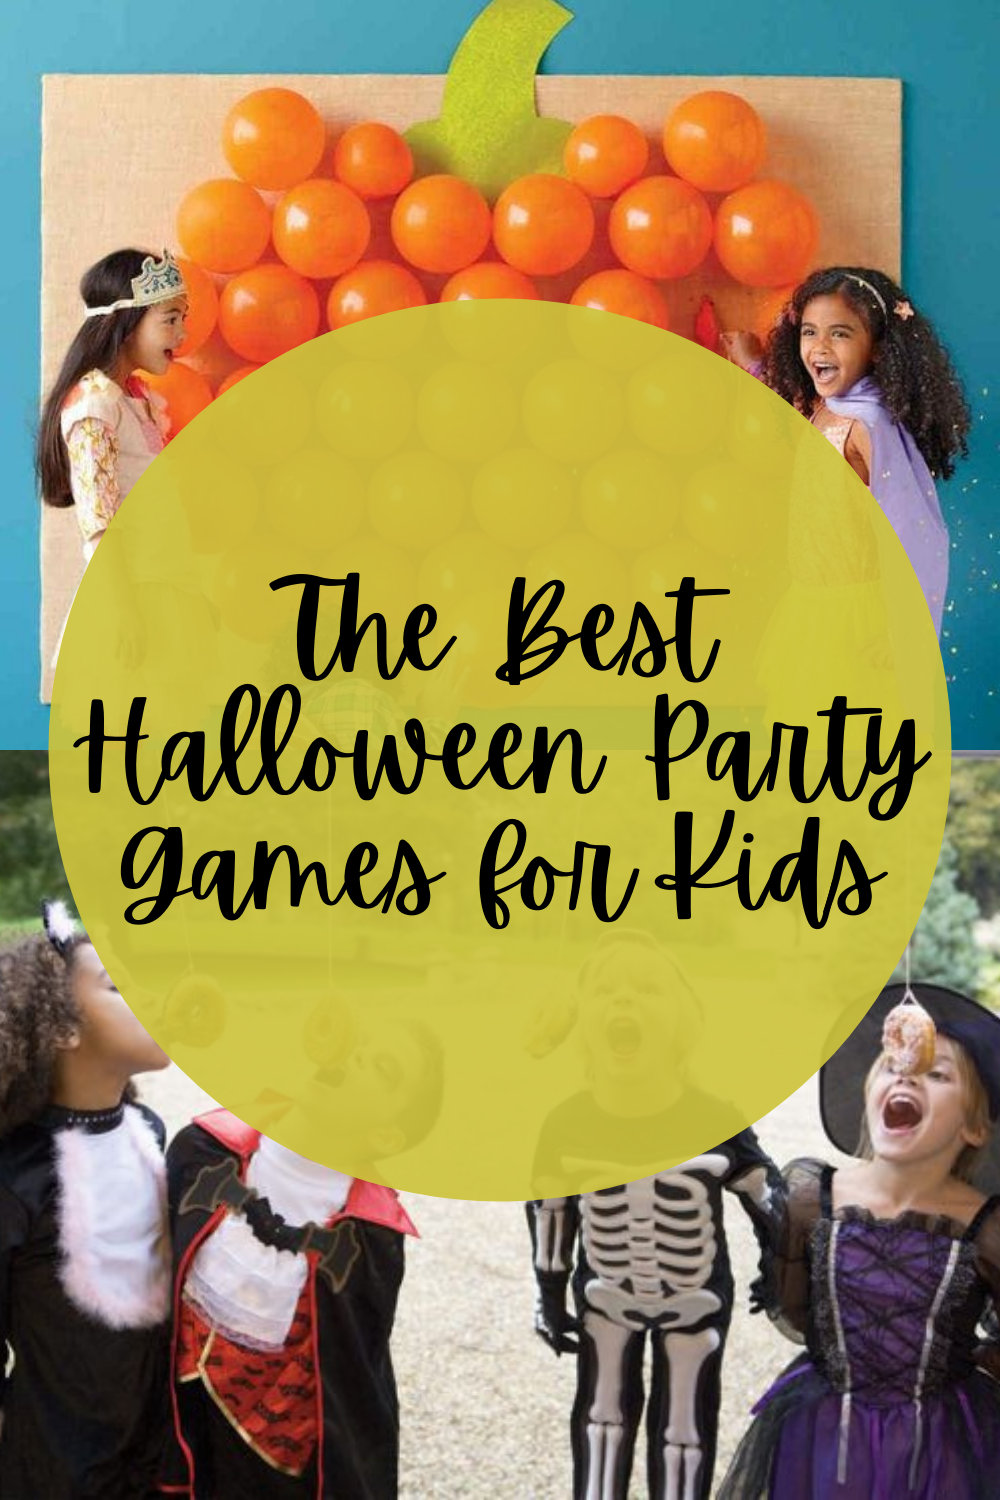 The Best Halloween Party Games